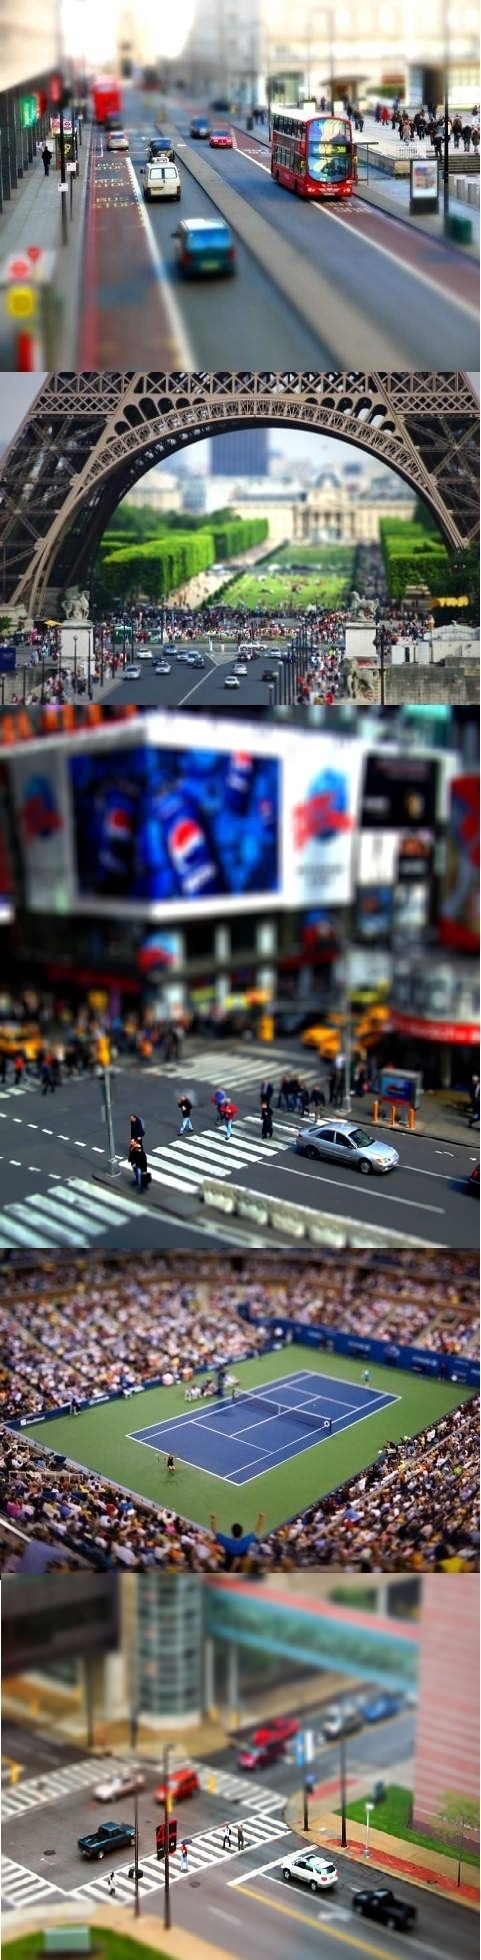 Miniature Effect Photography